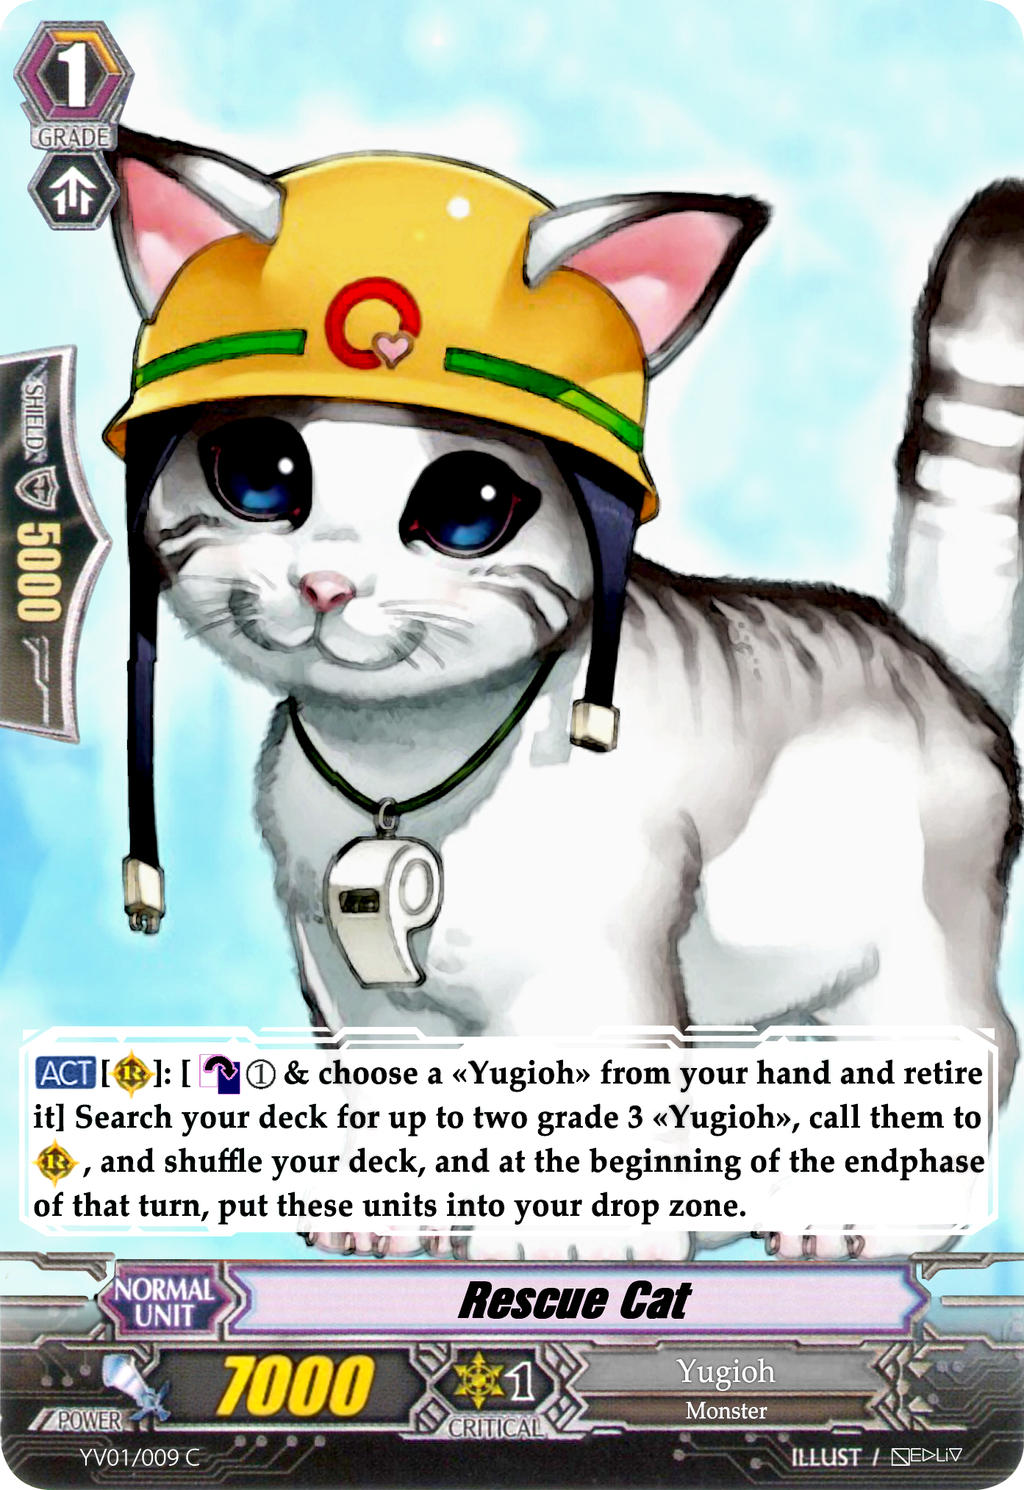 Yugioh Rescue Cat Images & Pictures - Becuo